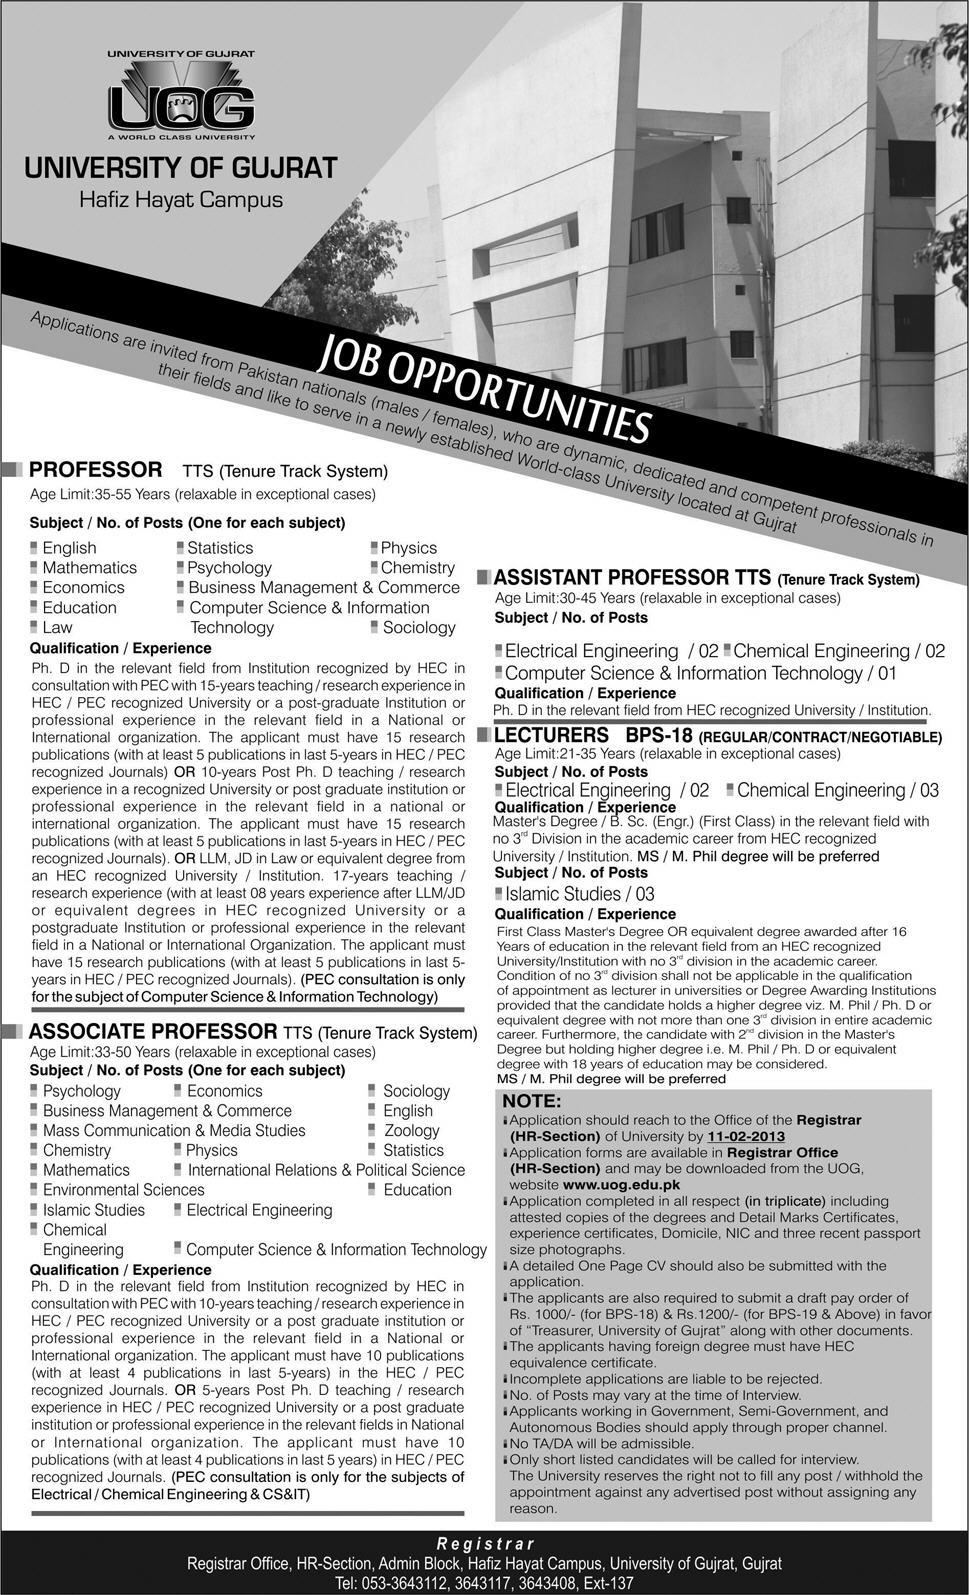 University of Gujrat Hafiz Hayat Campus Jobs 2013 University of Gujrat Hafiz Hayat Campus Jobs 2013